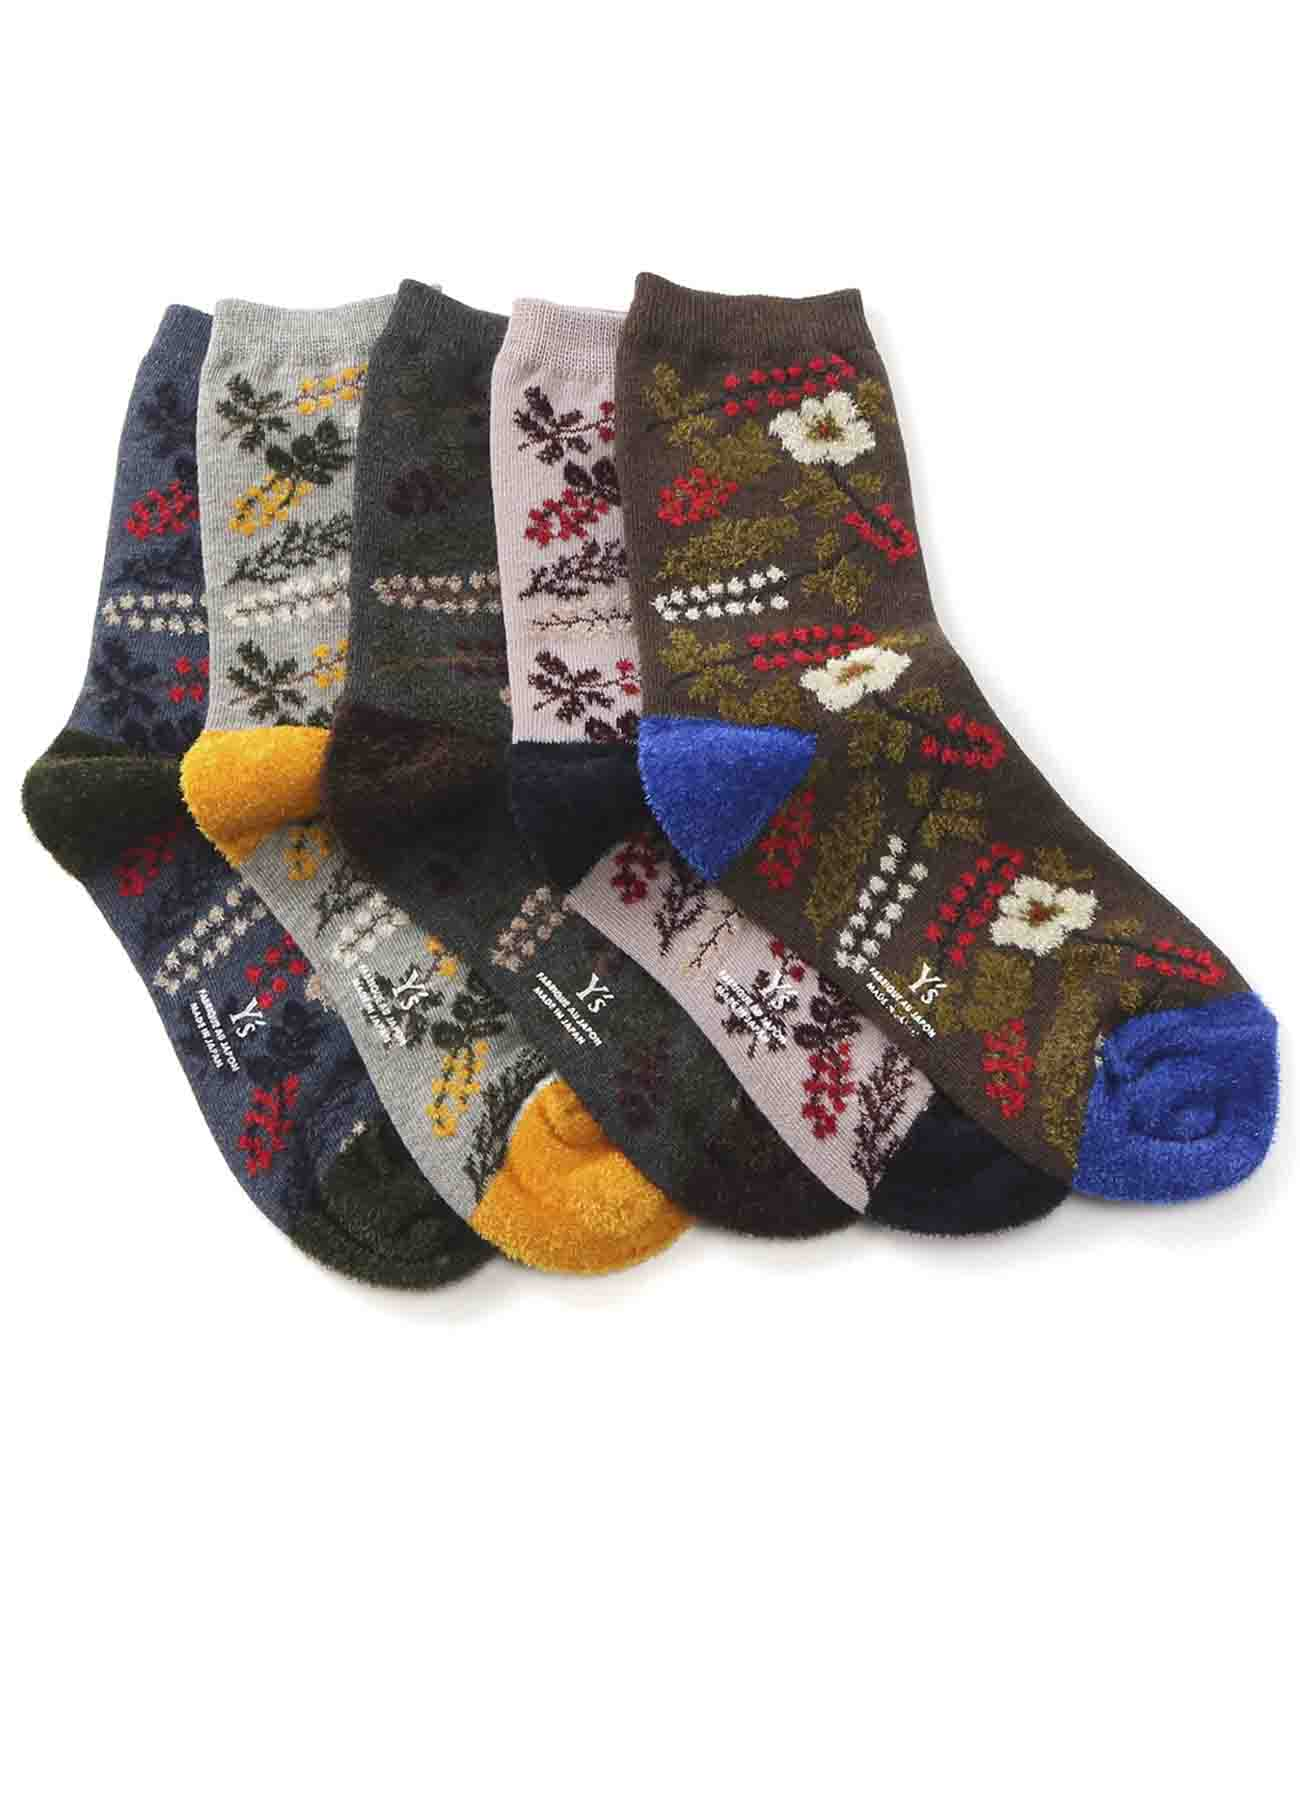 MOLE FLOWER PATTERN SOCKS